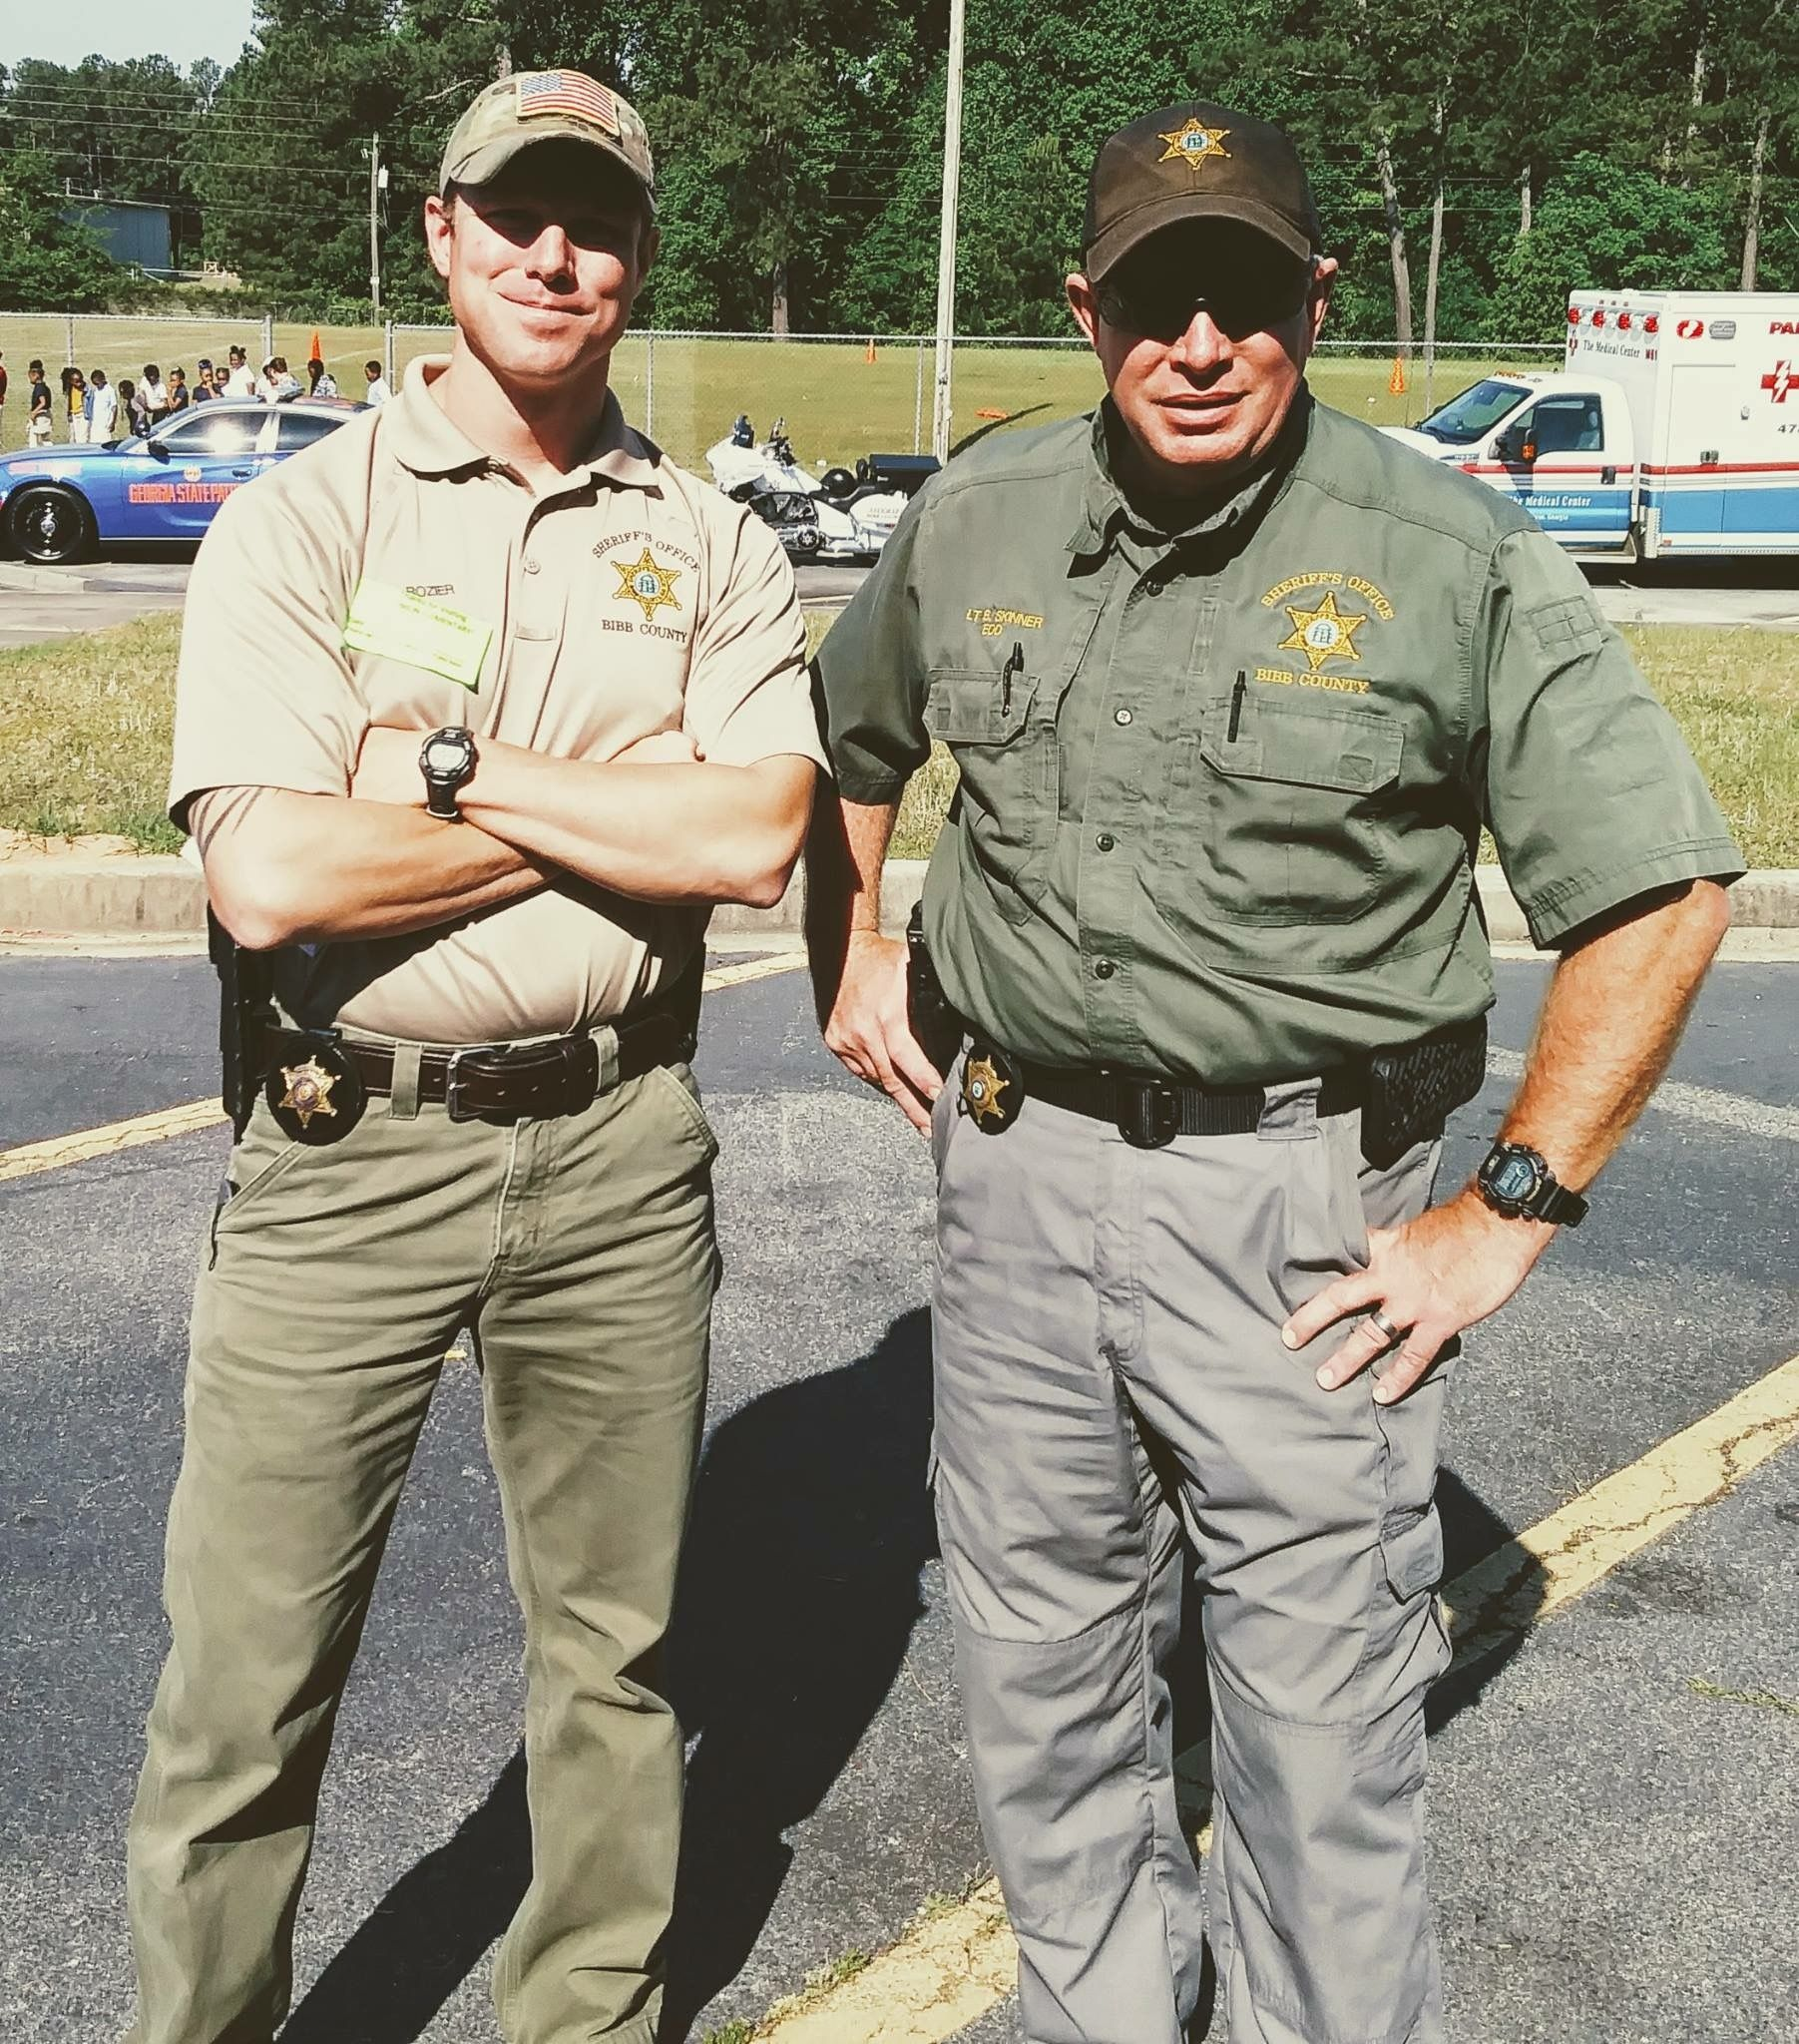 Check out these awesome pics our bibb county sheriffs